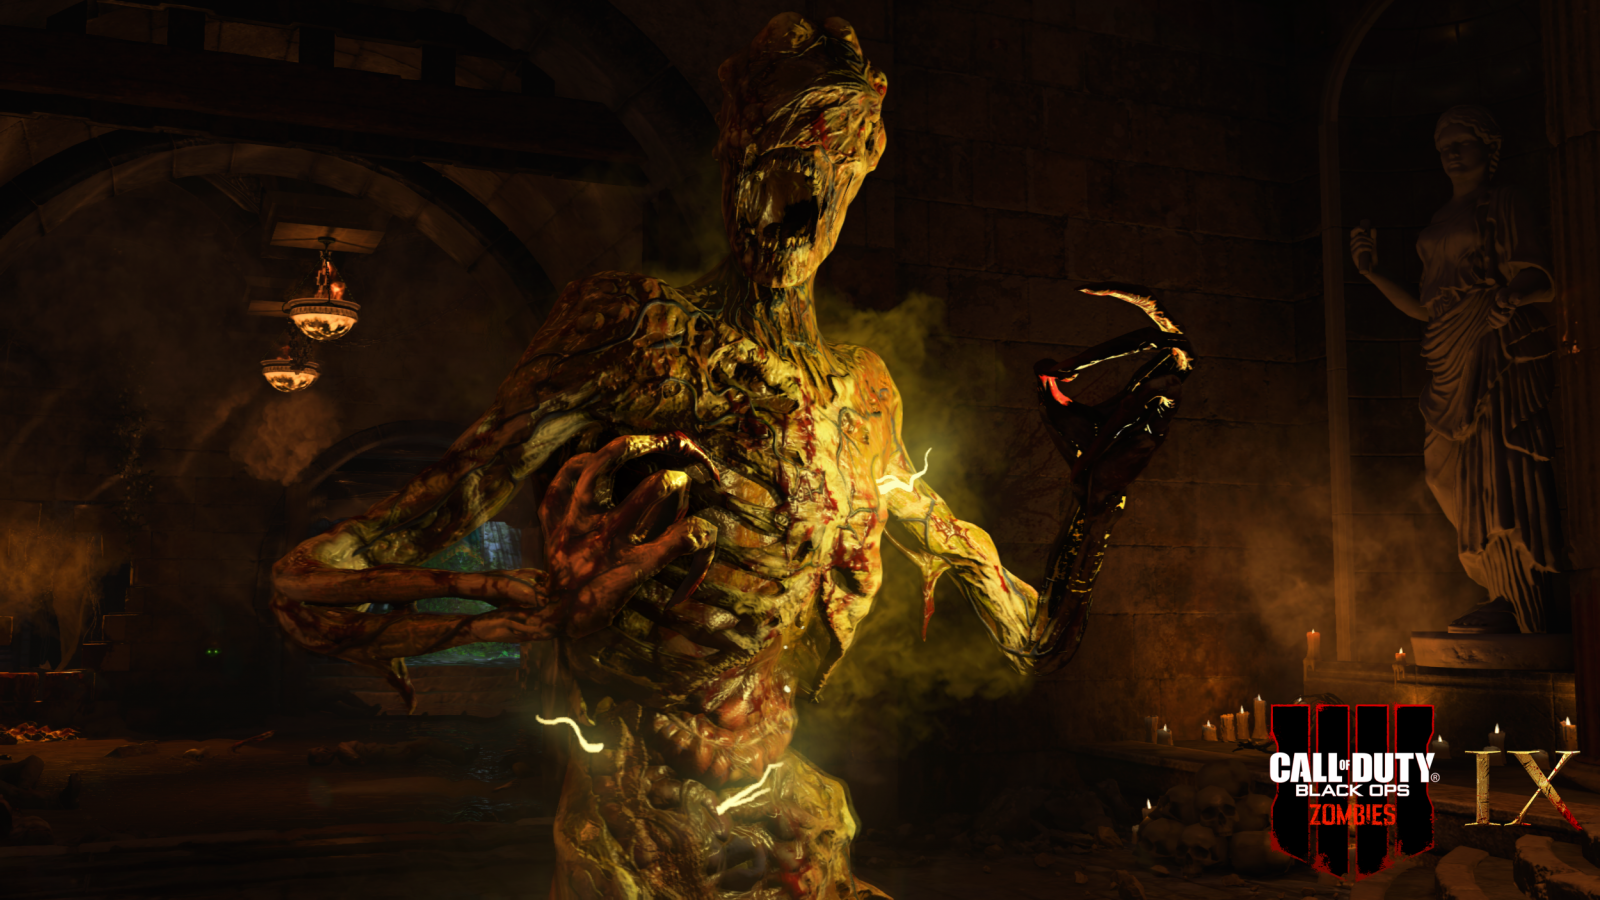 Call Of Duty Black Ops 4 Blackout Zombies Map Player Count